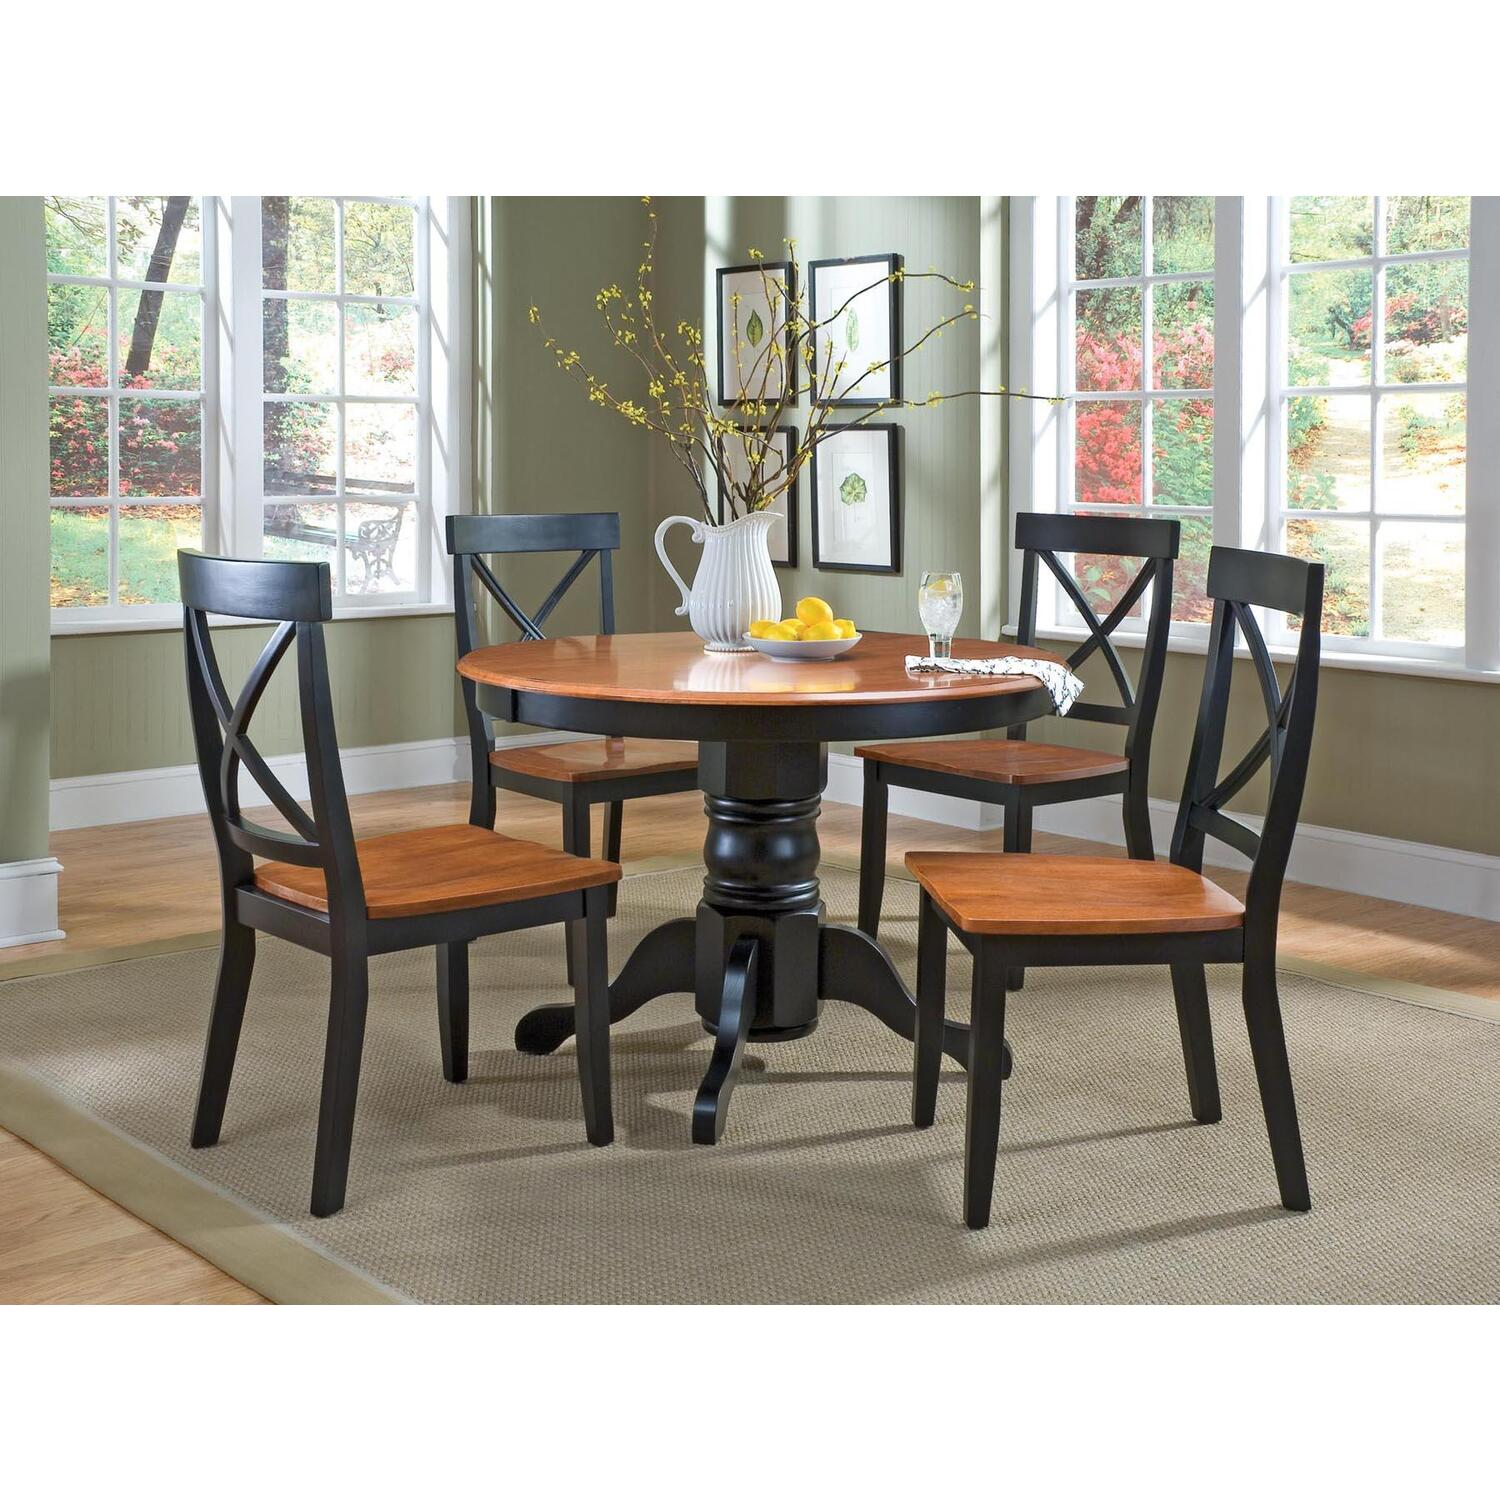 Home styles 5 piece round pedestal dining set by oj for 5 piece dining set